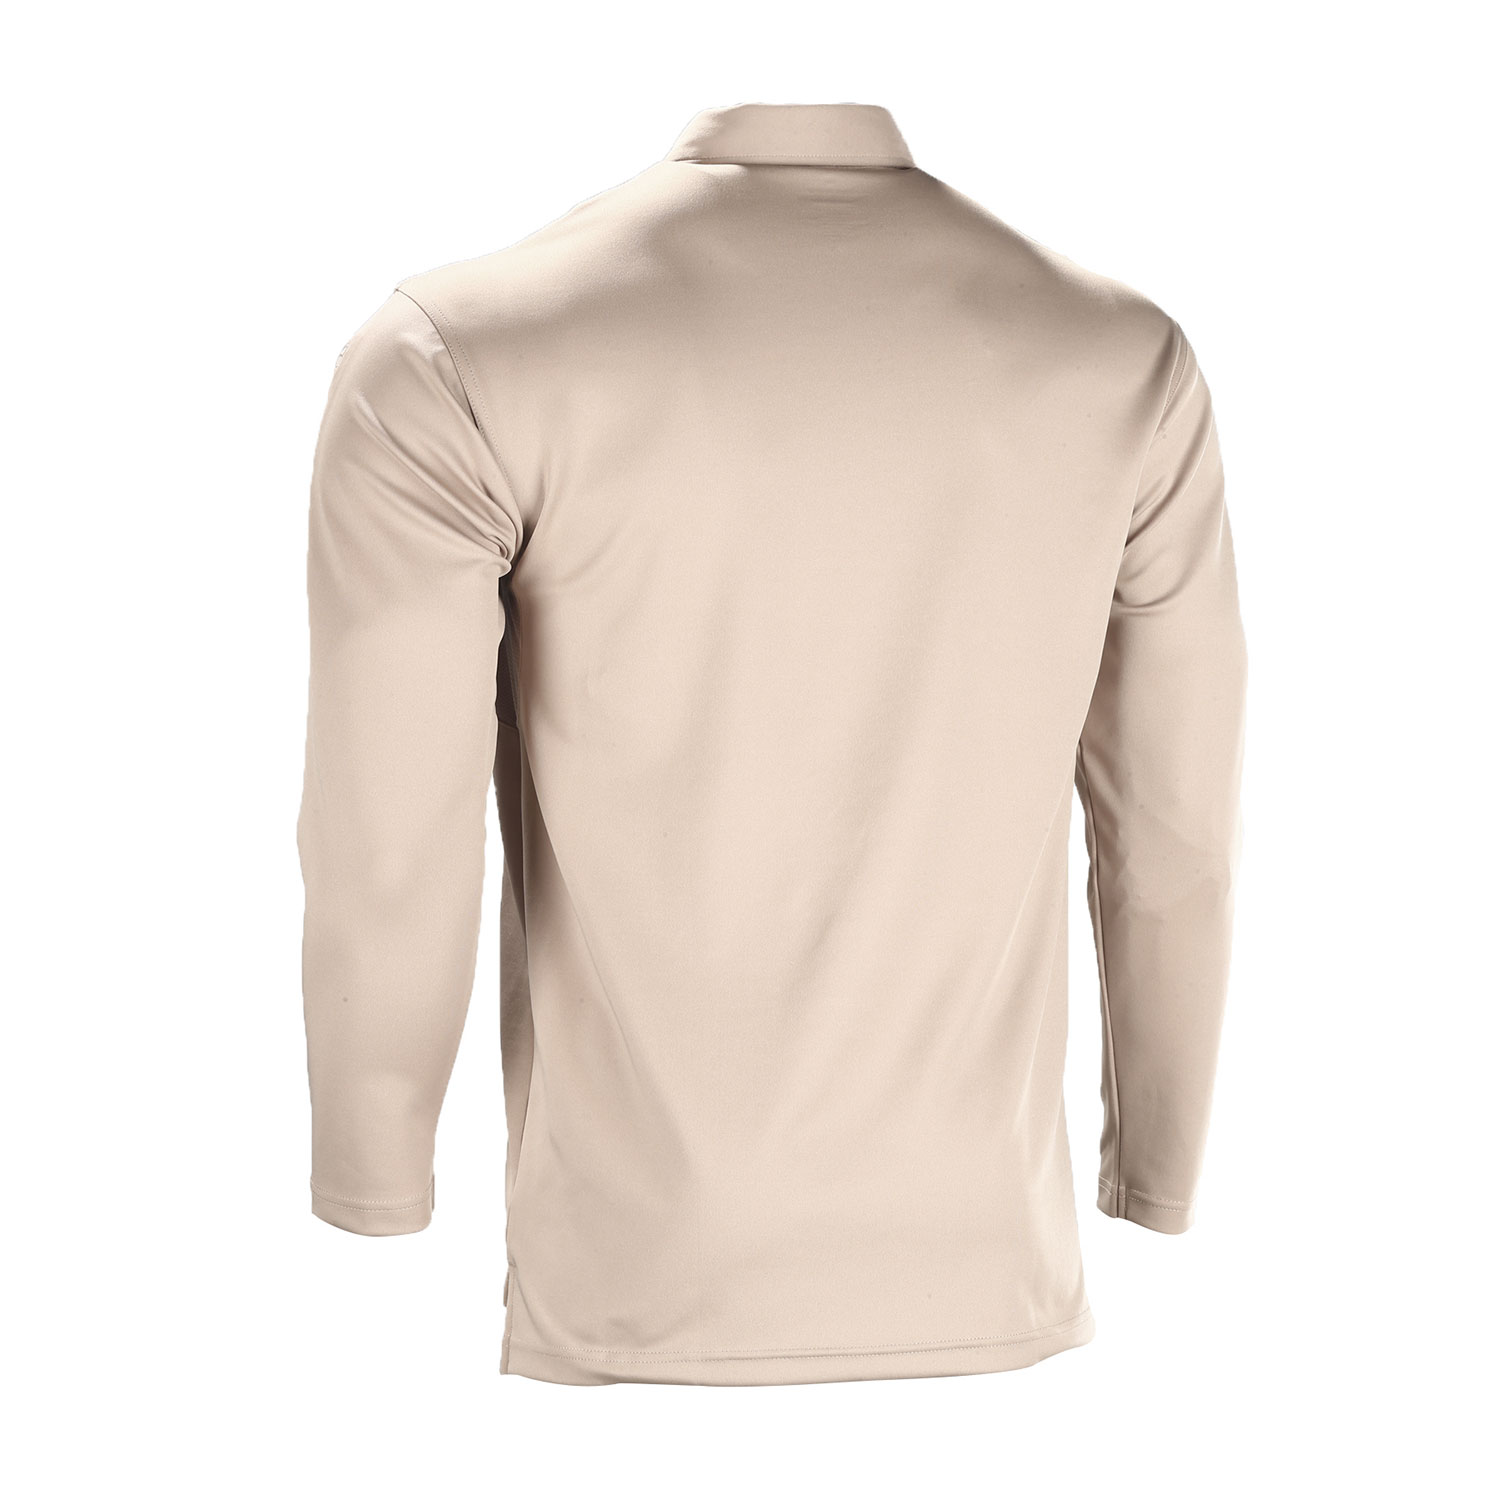 Propper Ice Performance Long Sleeve Polo Shirt